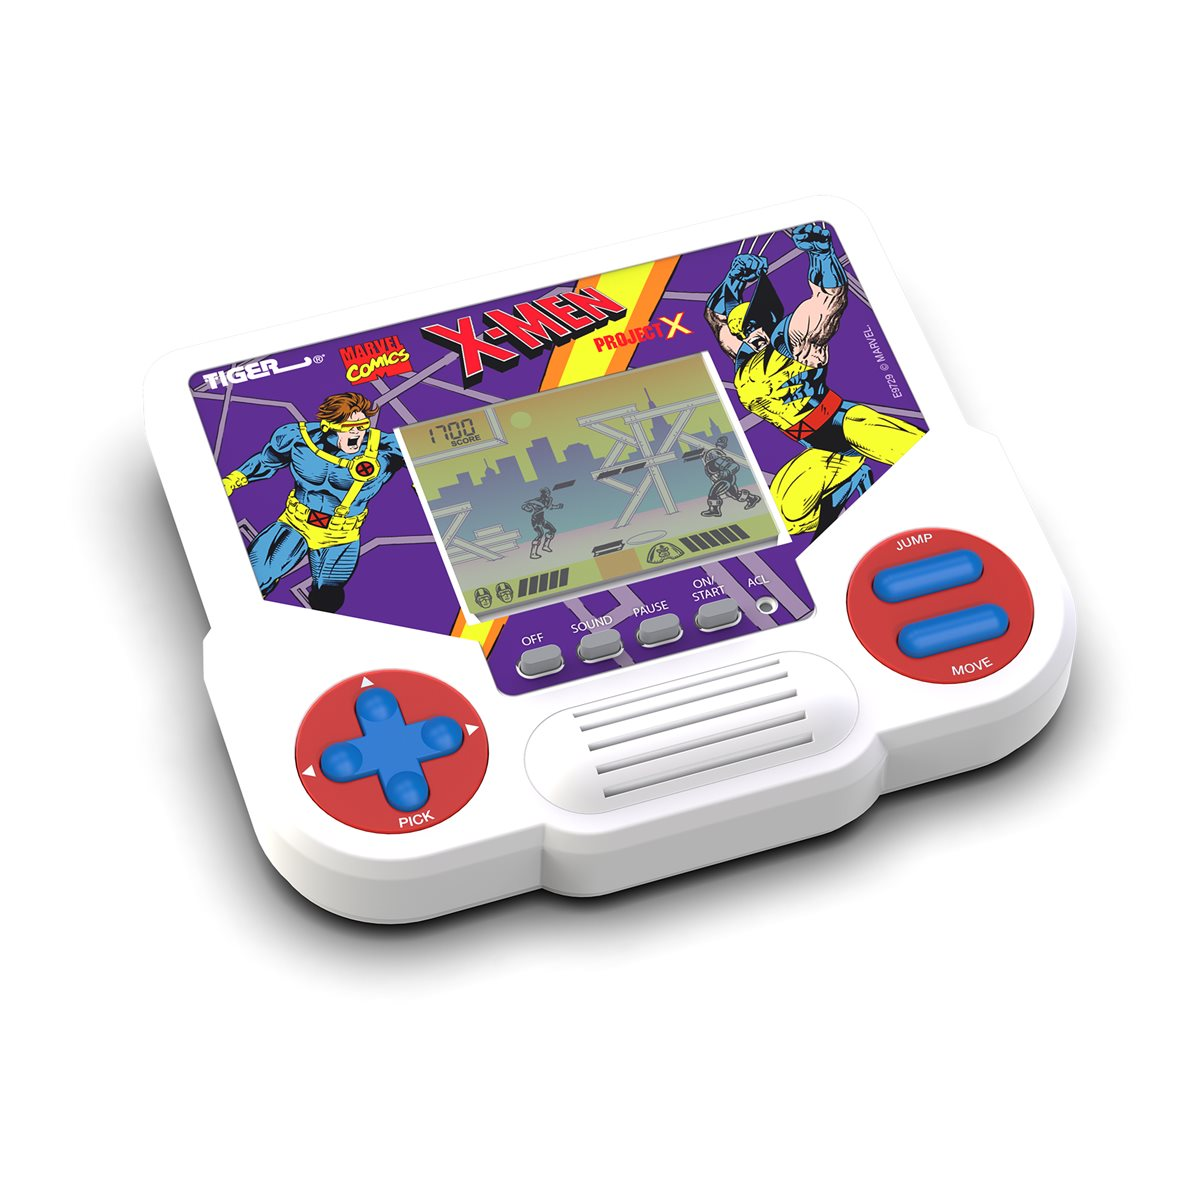 Tiger Electronics classic handheld LCD games are coming back this fall 18